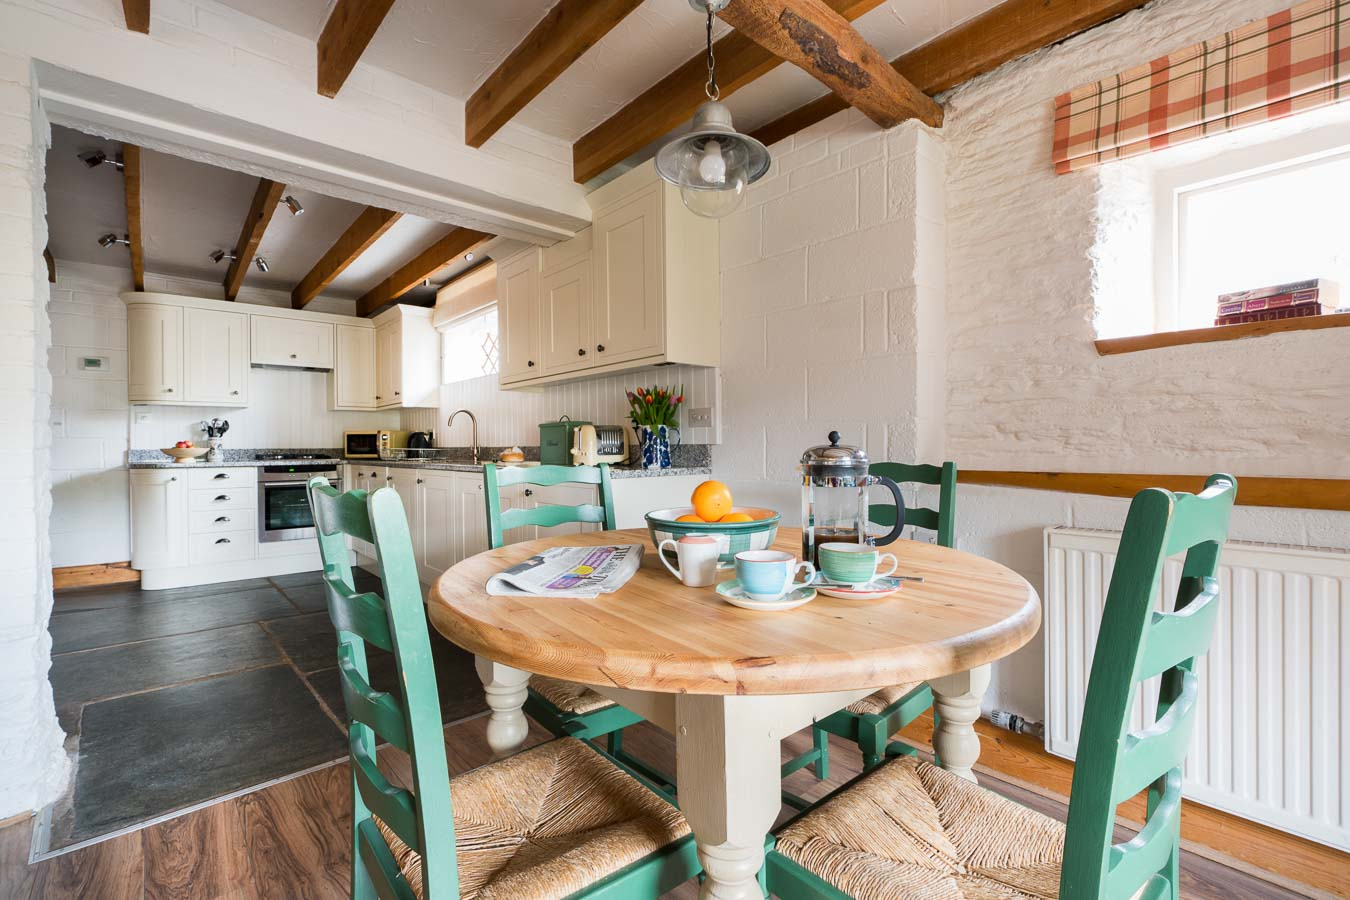 The dining table for four and open archway leading to cream kitchen in Quarry cottage at Flear Farm.